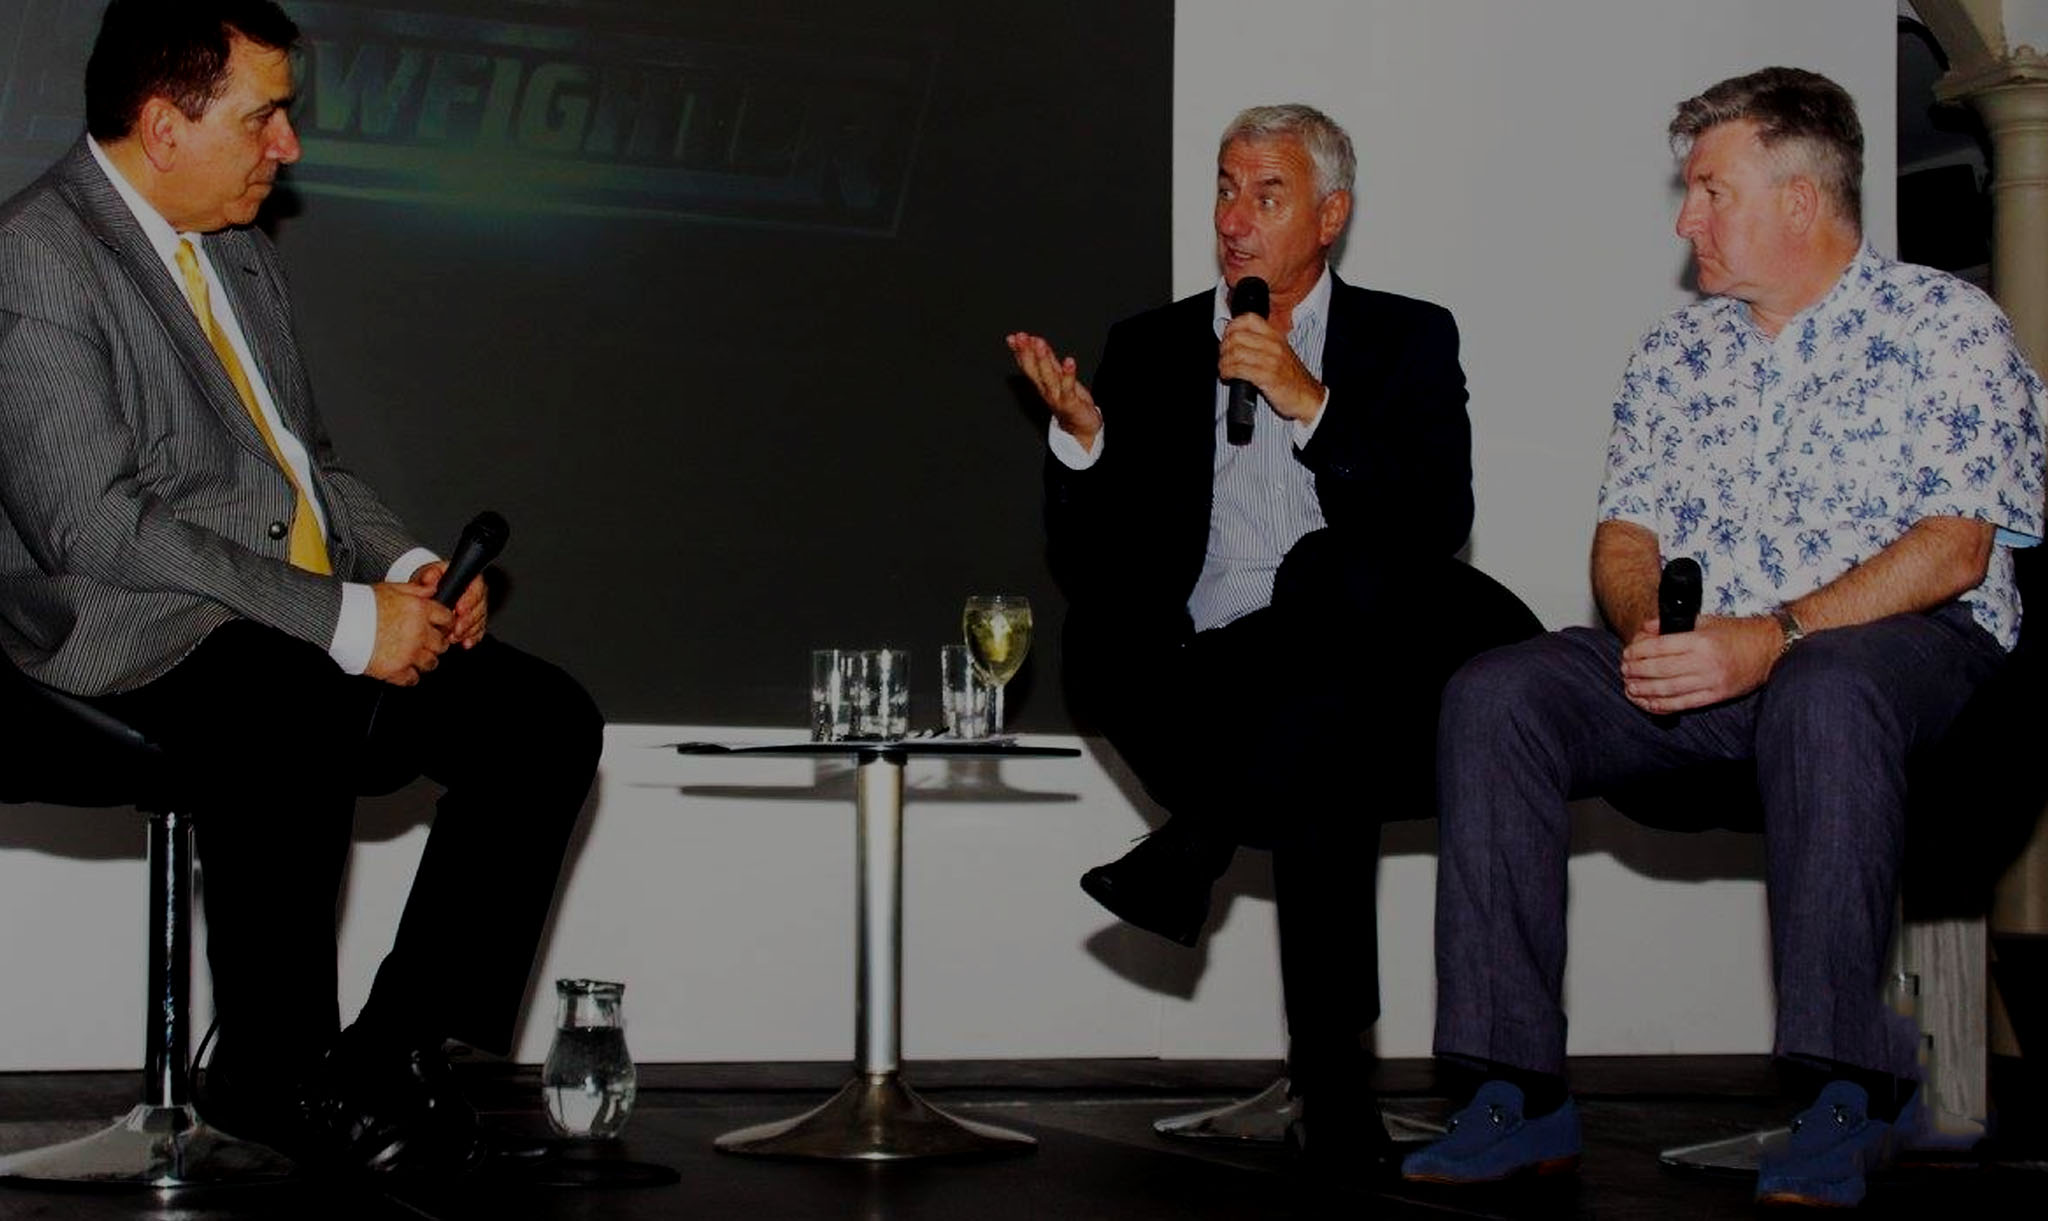 Reds Folklore With Ian Rush & Norman Whiteside - Held at the Ramada Park Hall, Wolverhampton on 13th December 2017.